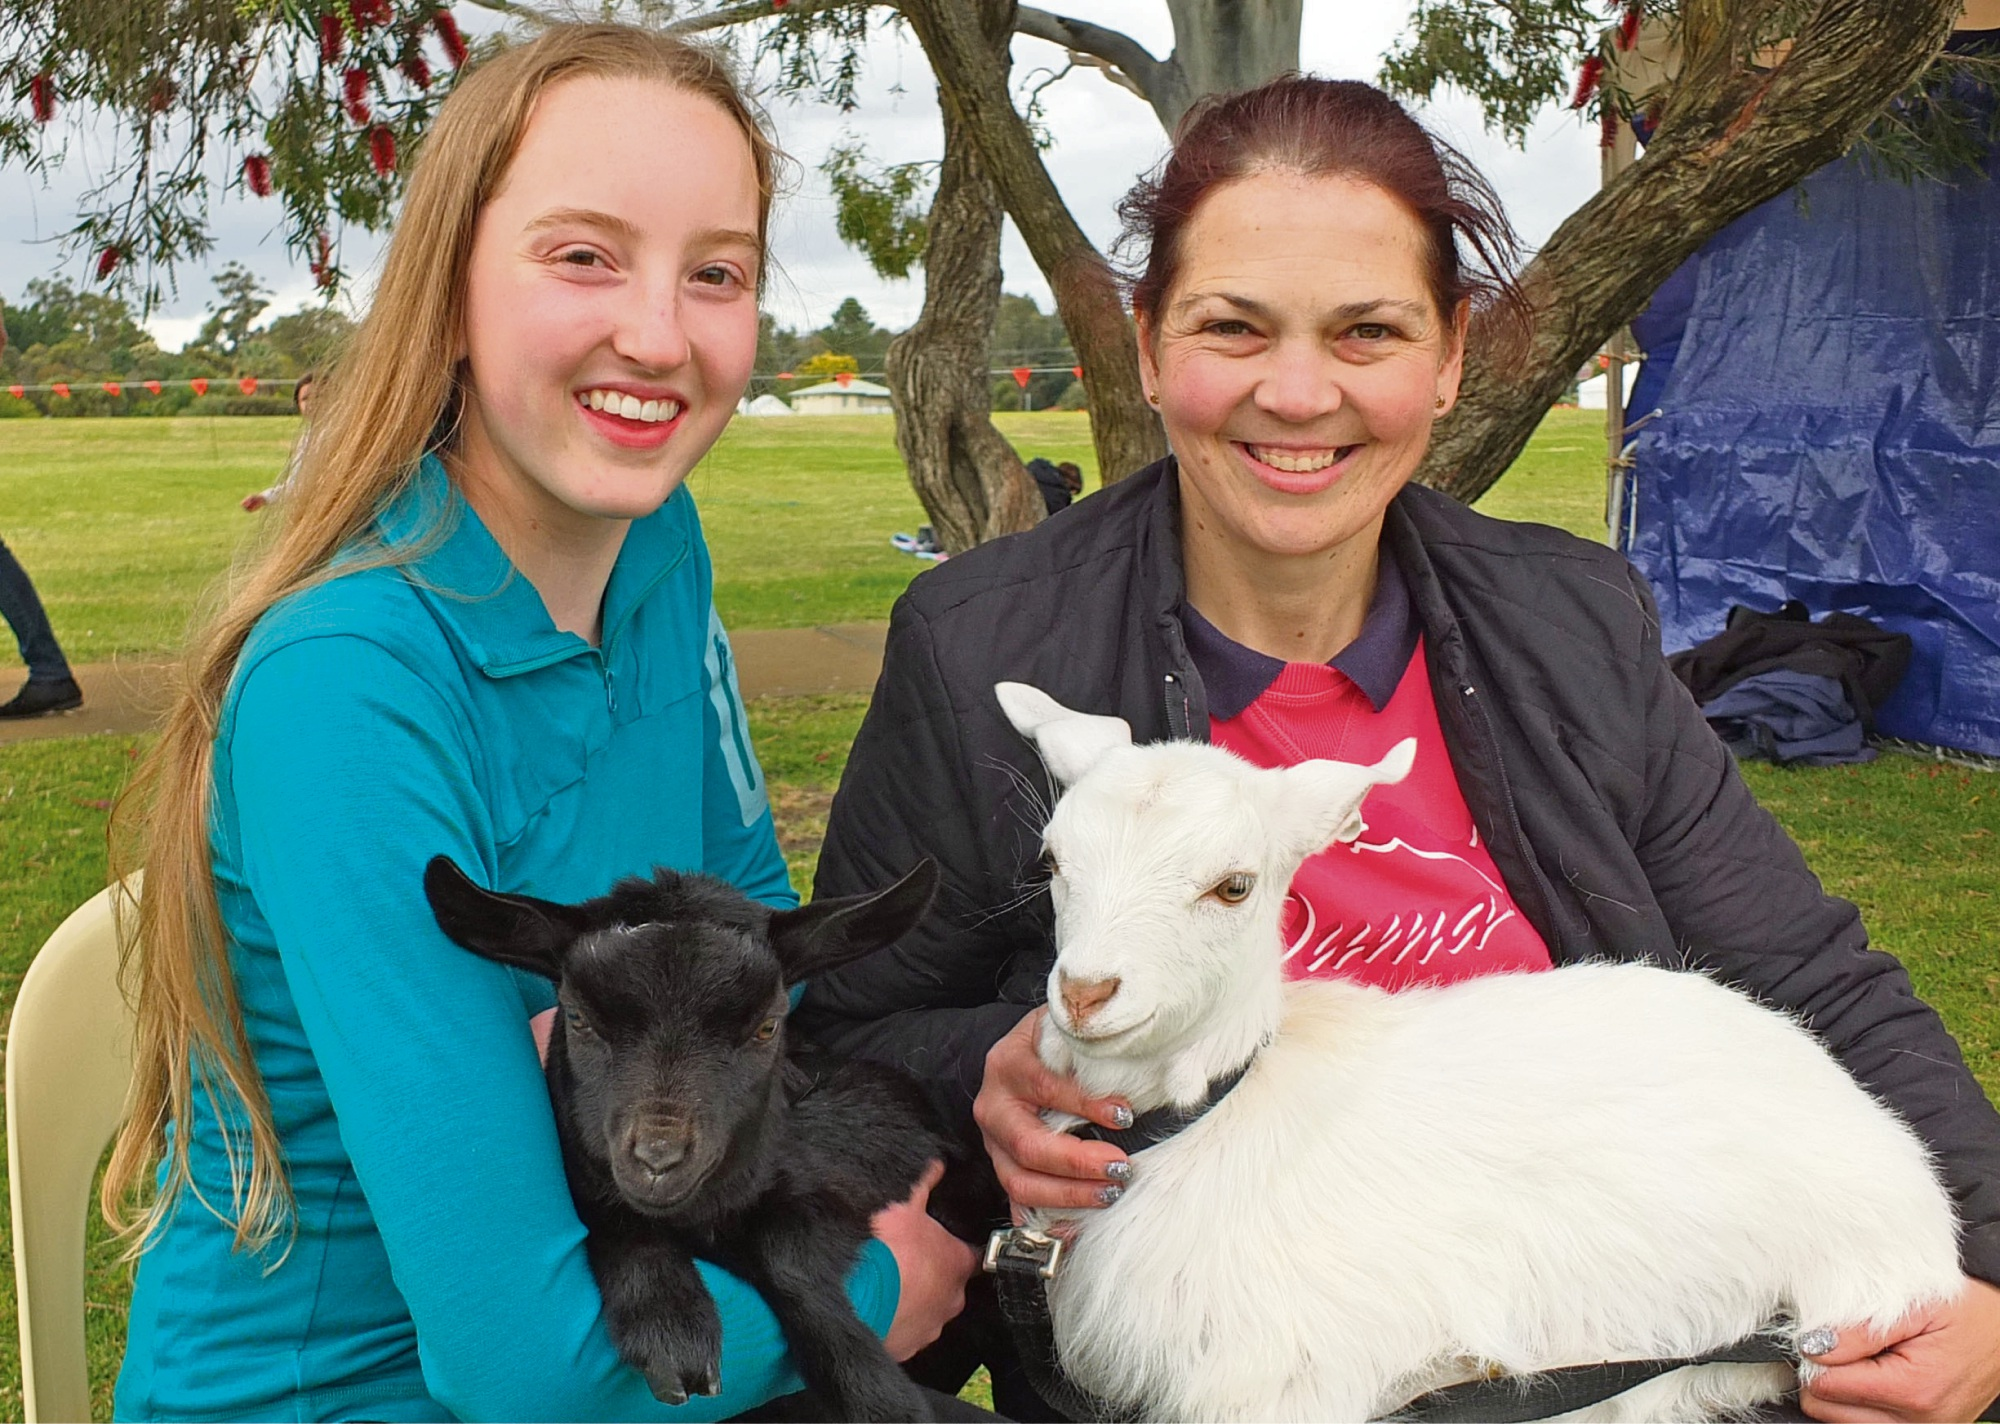 Bella Langfield with Millie, a pygmy goat, and Petrina Porter with Sophia, a three-month-old Australian Miniature Goat.